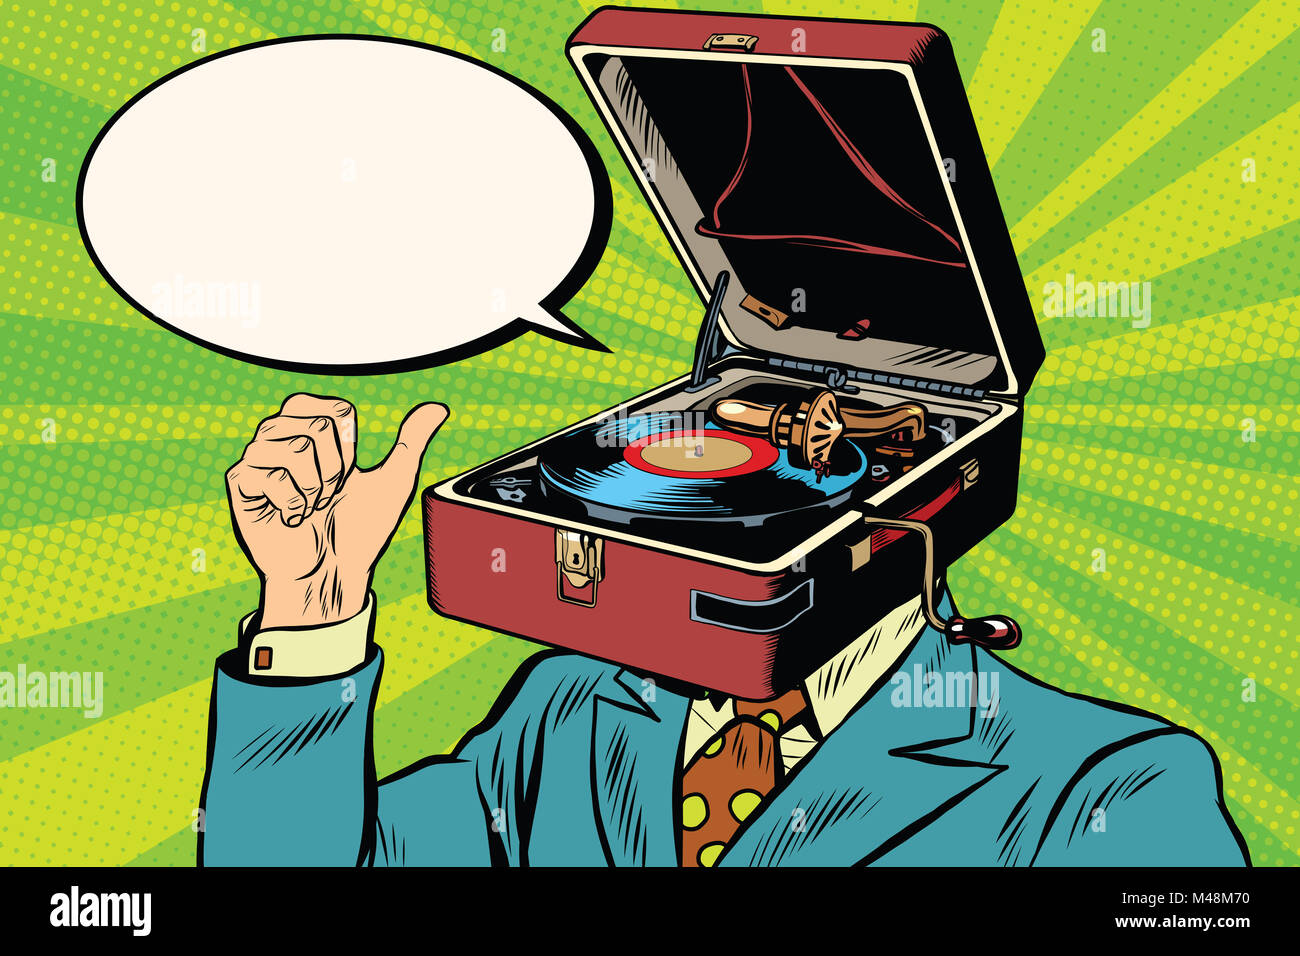 Illustration Of Gramophone Stockfotos & Illustration Of Gramophone ...